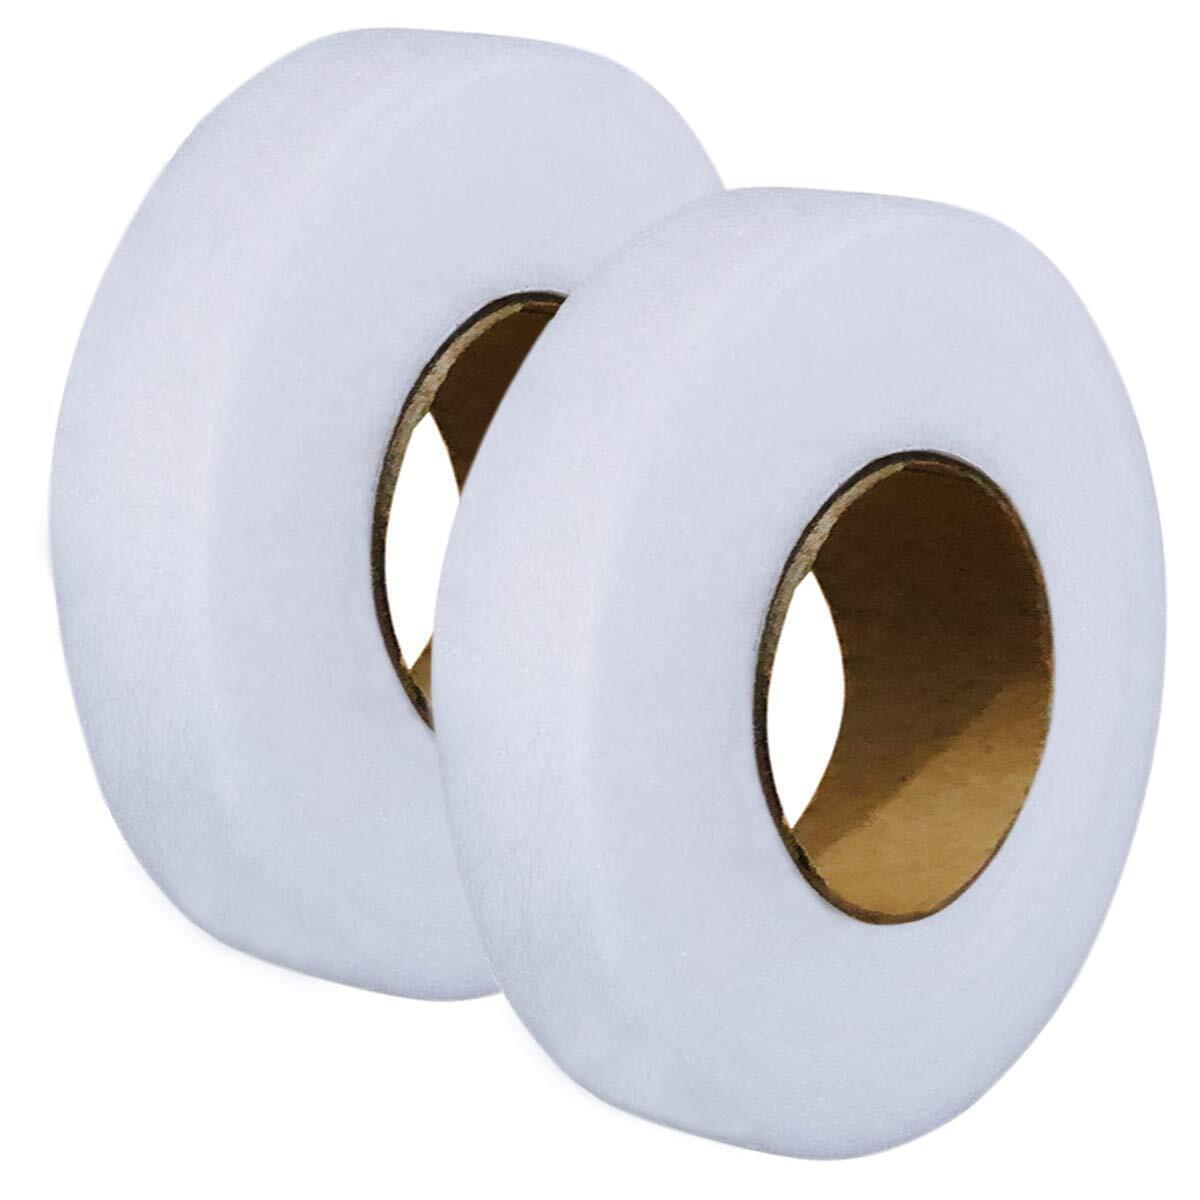 2pcs Hem Iron-On Adhesive Tape Fabric Fusing Tape Each 27 Yards Length, 0.59inch/1.5cm Width